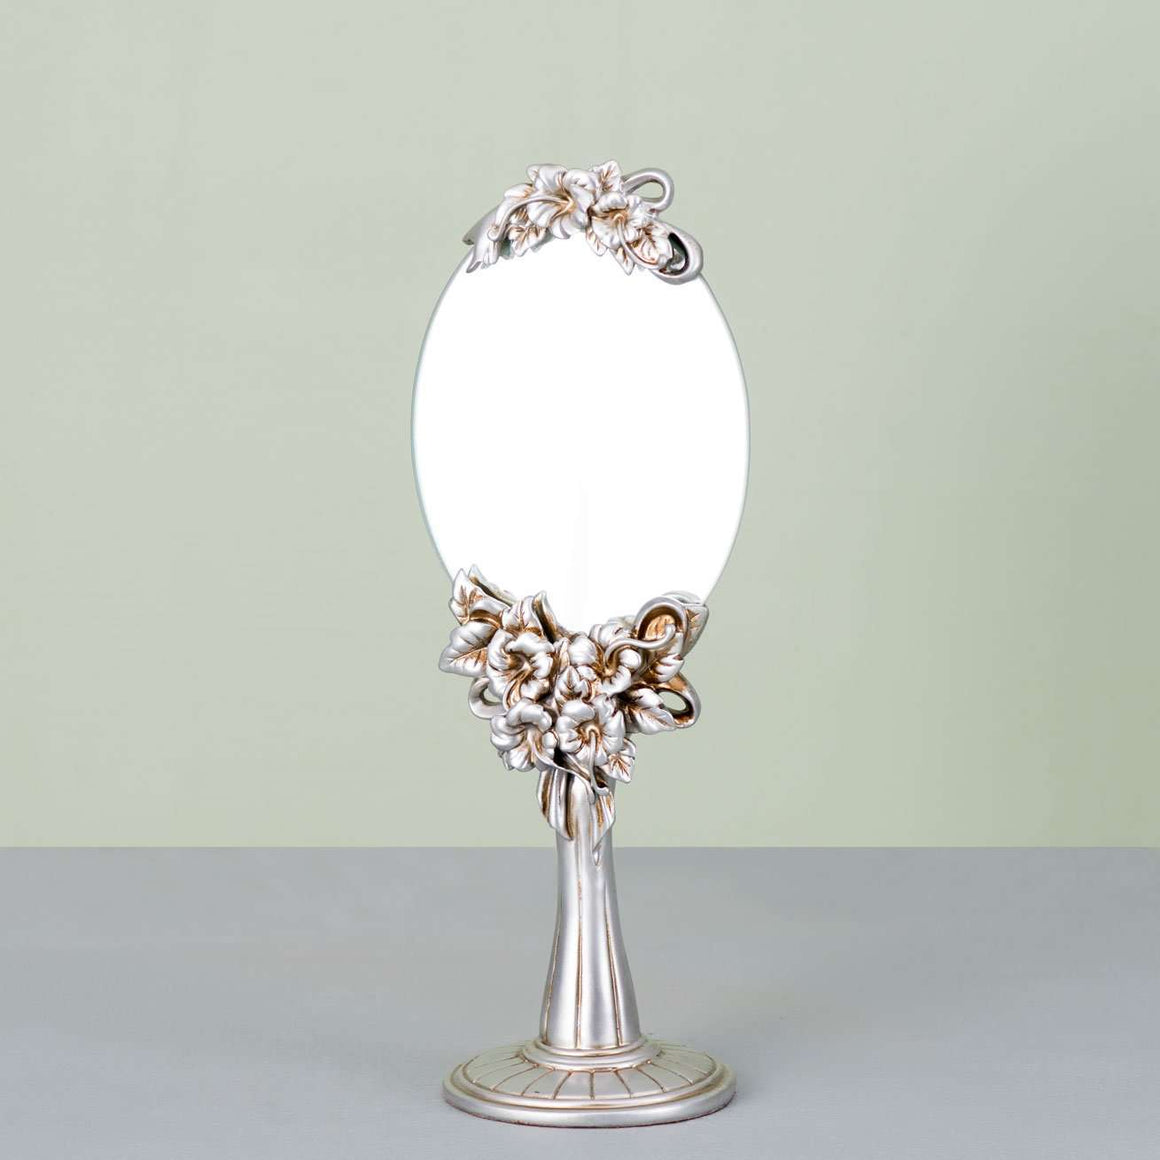 Antiqued Silver Tabletop Mirror - Large